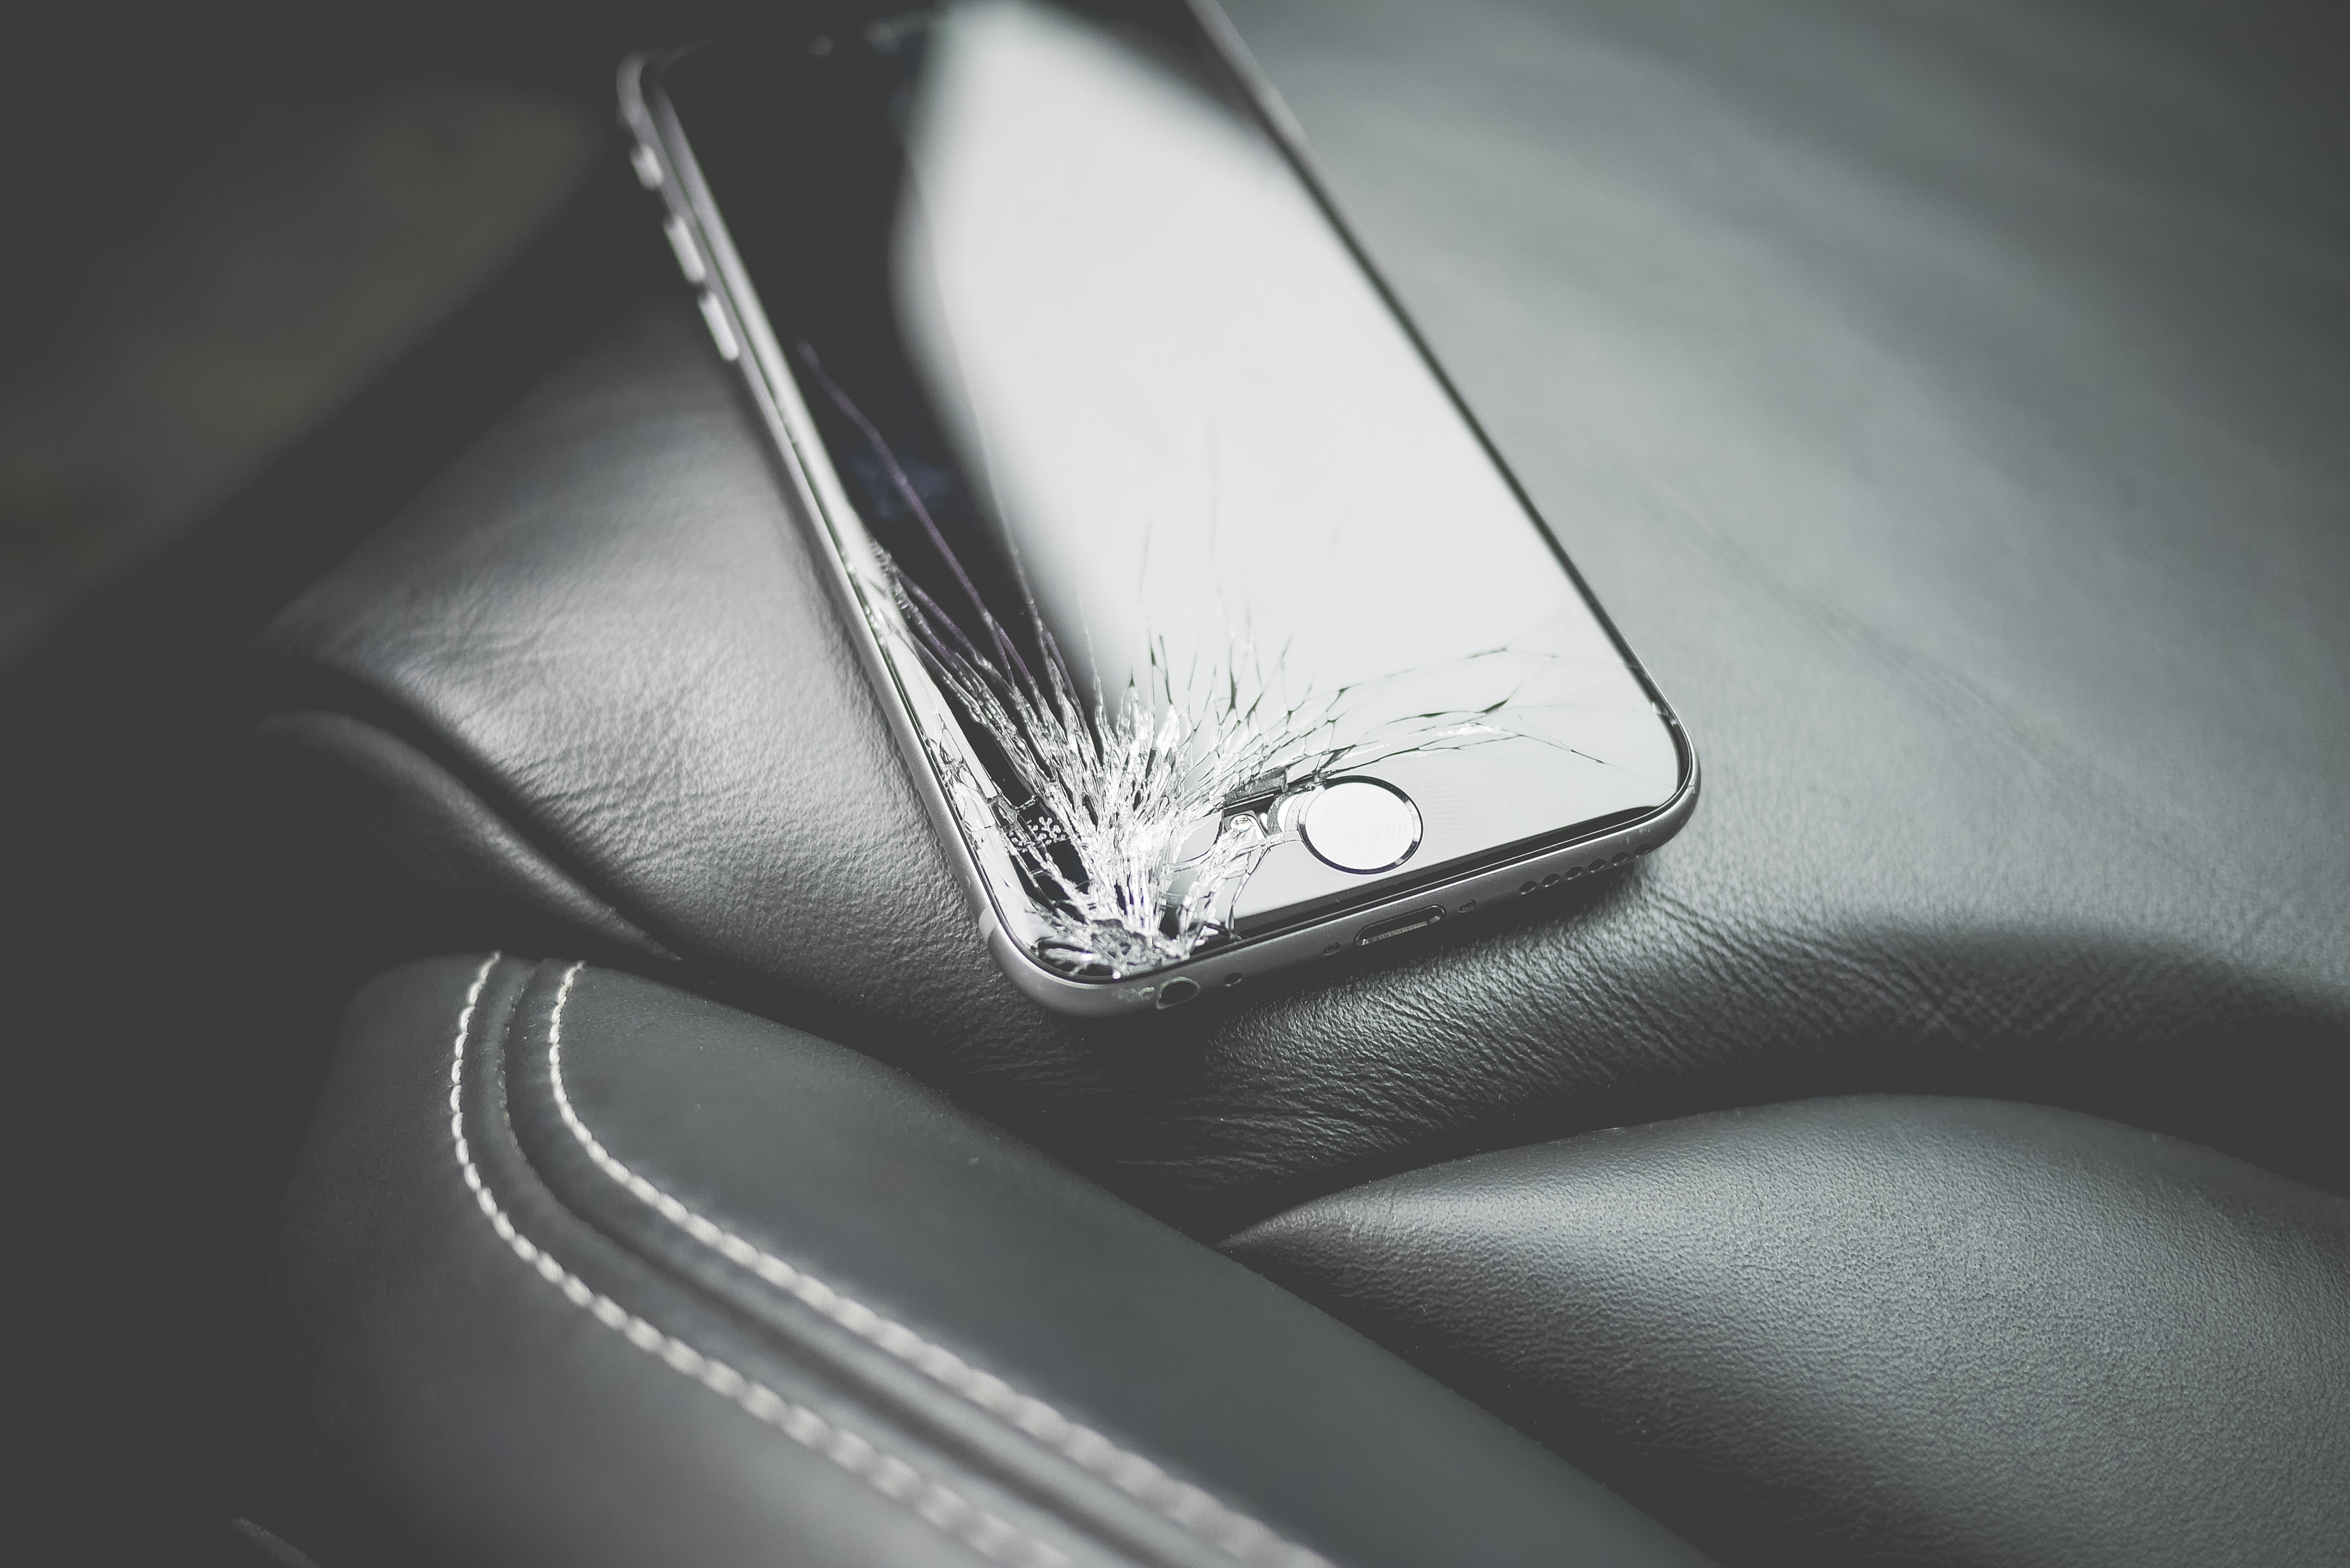 broken iphone on car seat